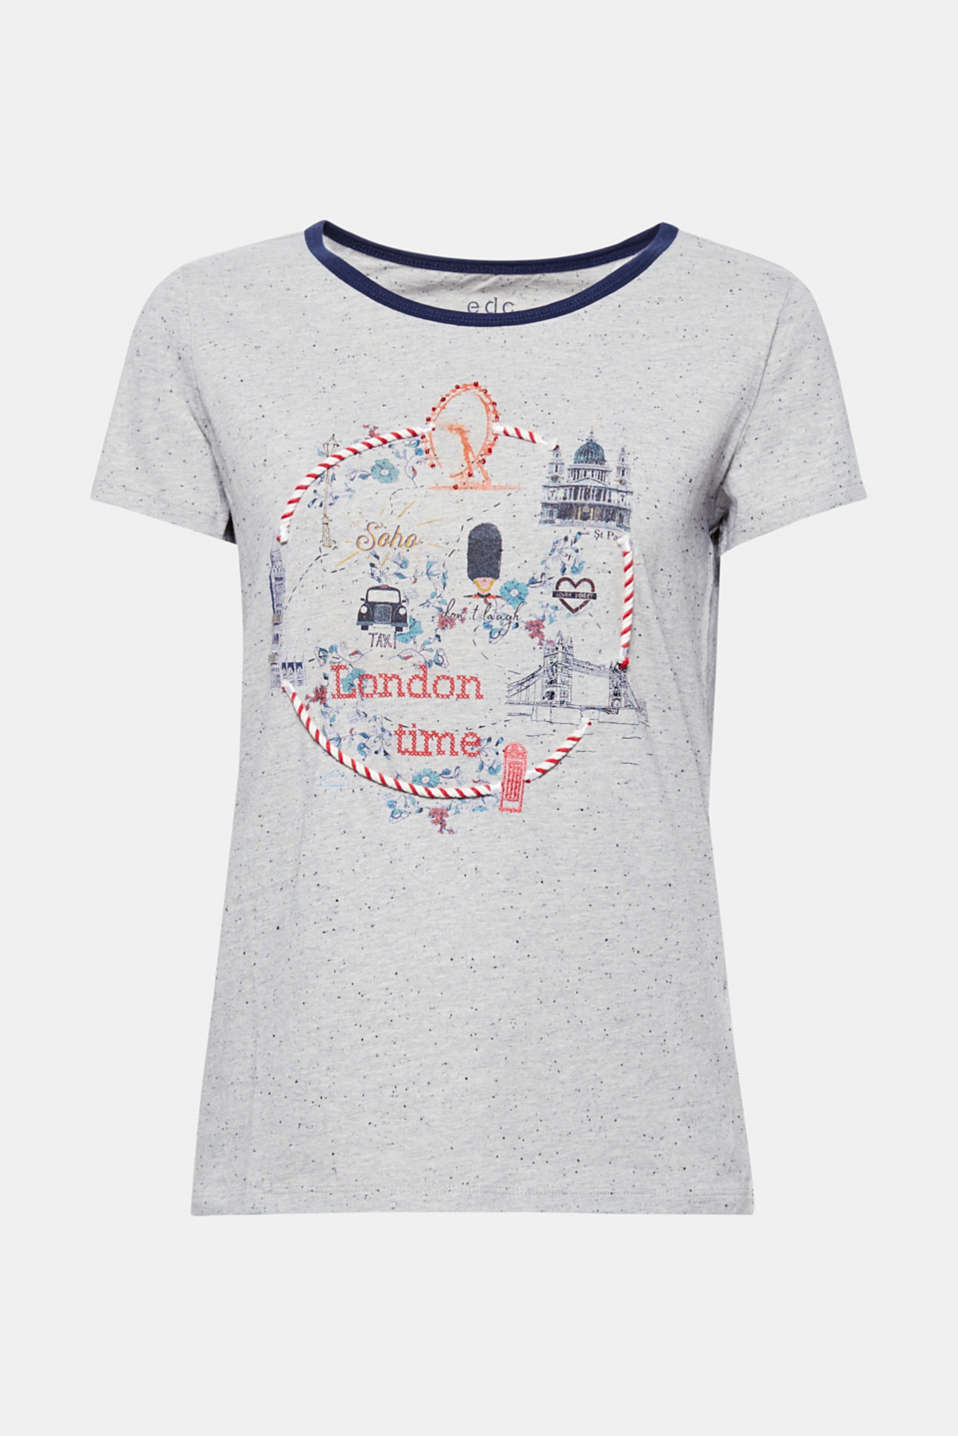 The front artwork, made up of a print with cord and sequin appliqués, makes this napped jersey T-shirt a truly eye-catching piece!